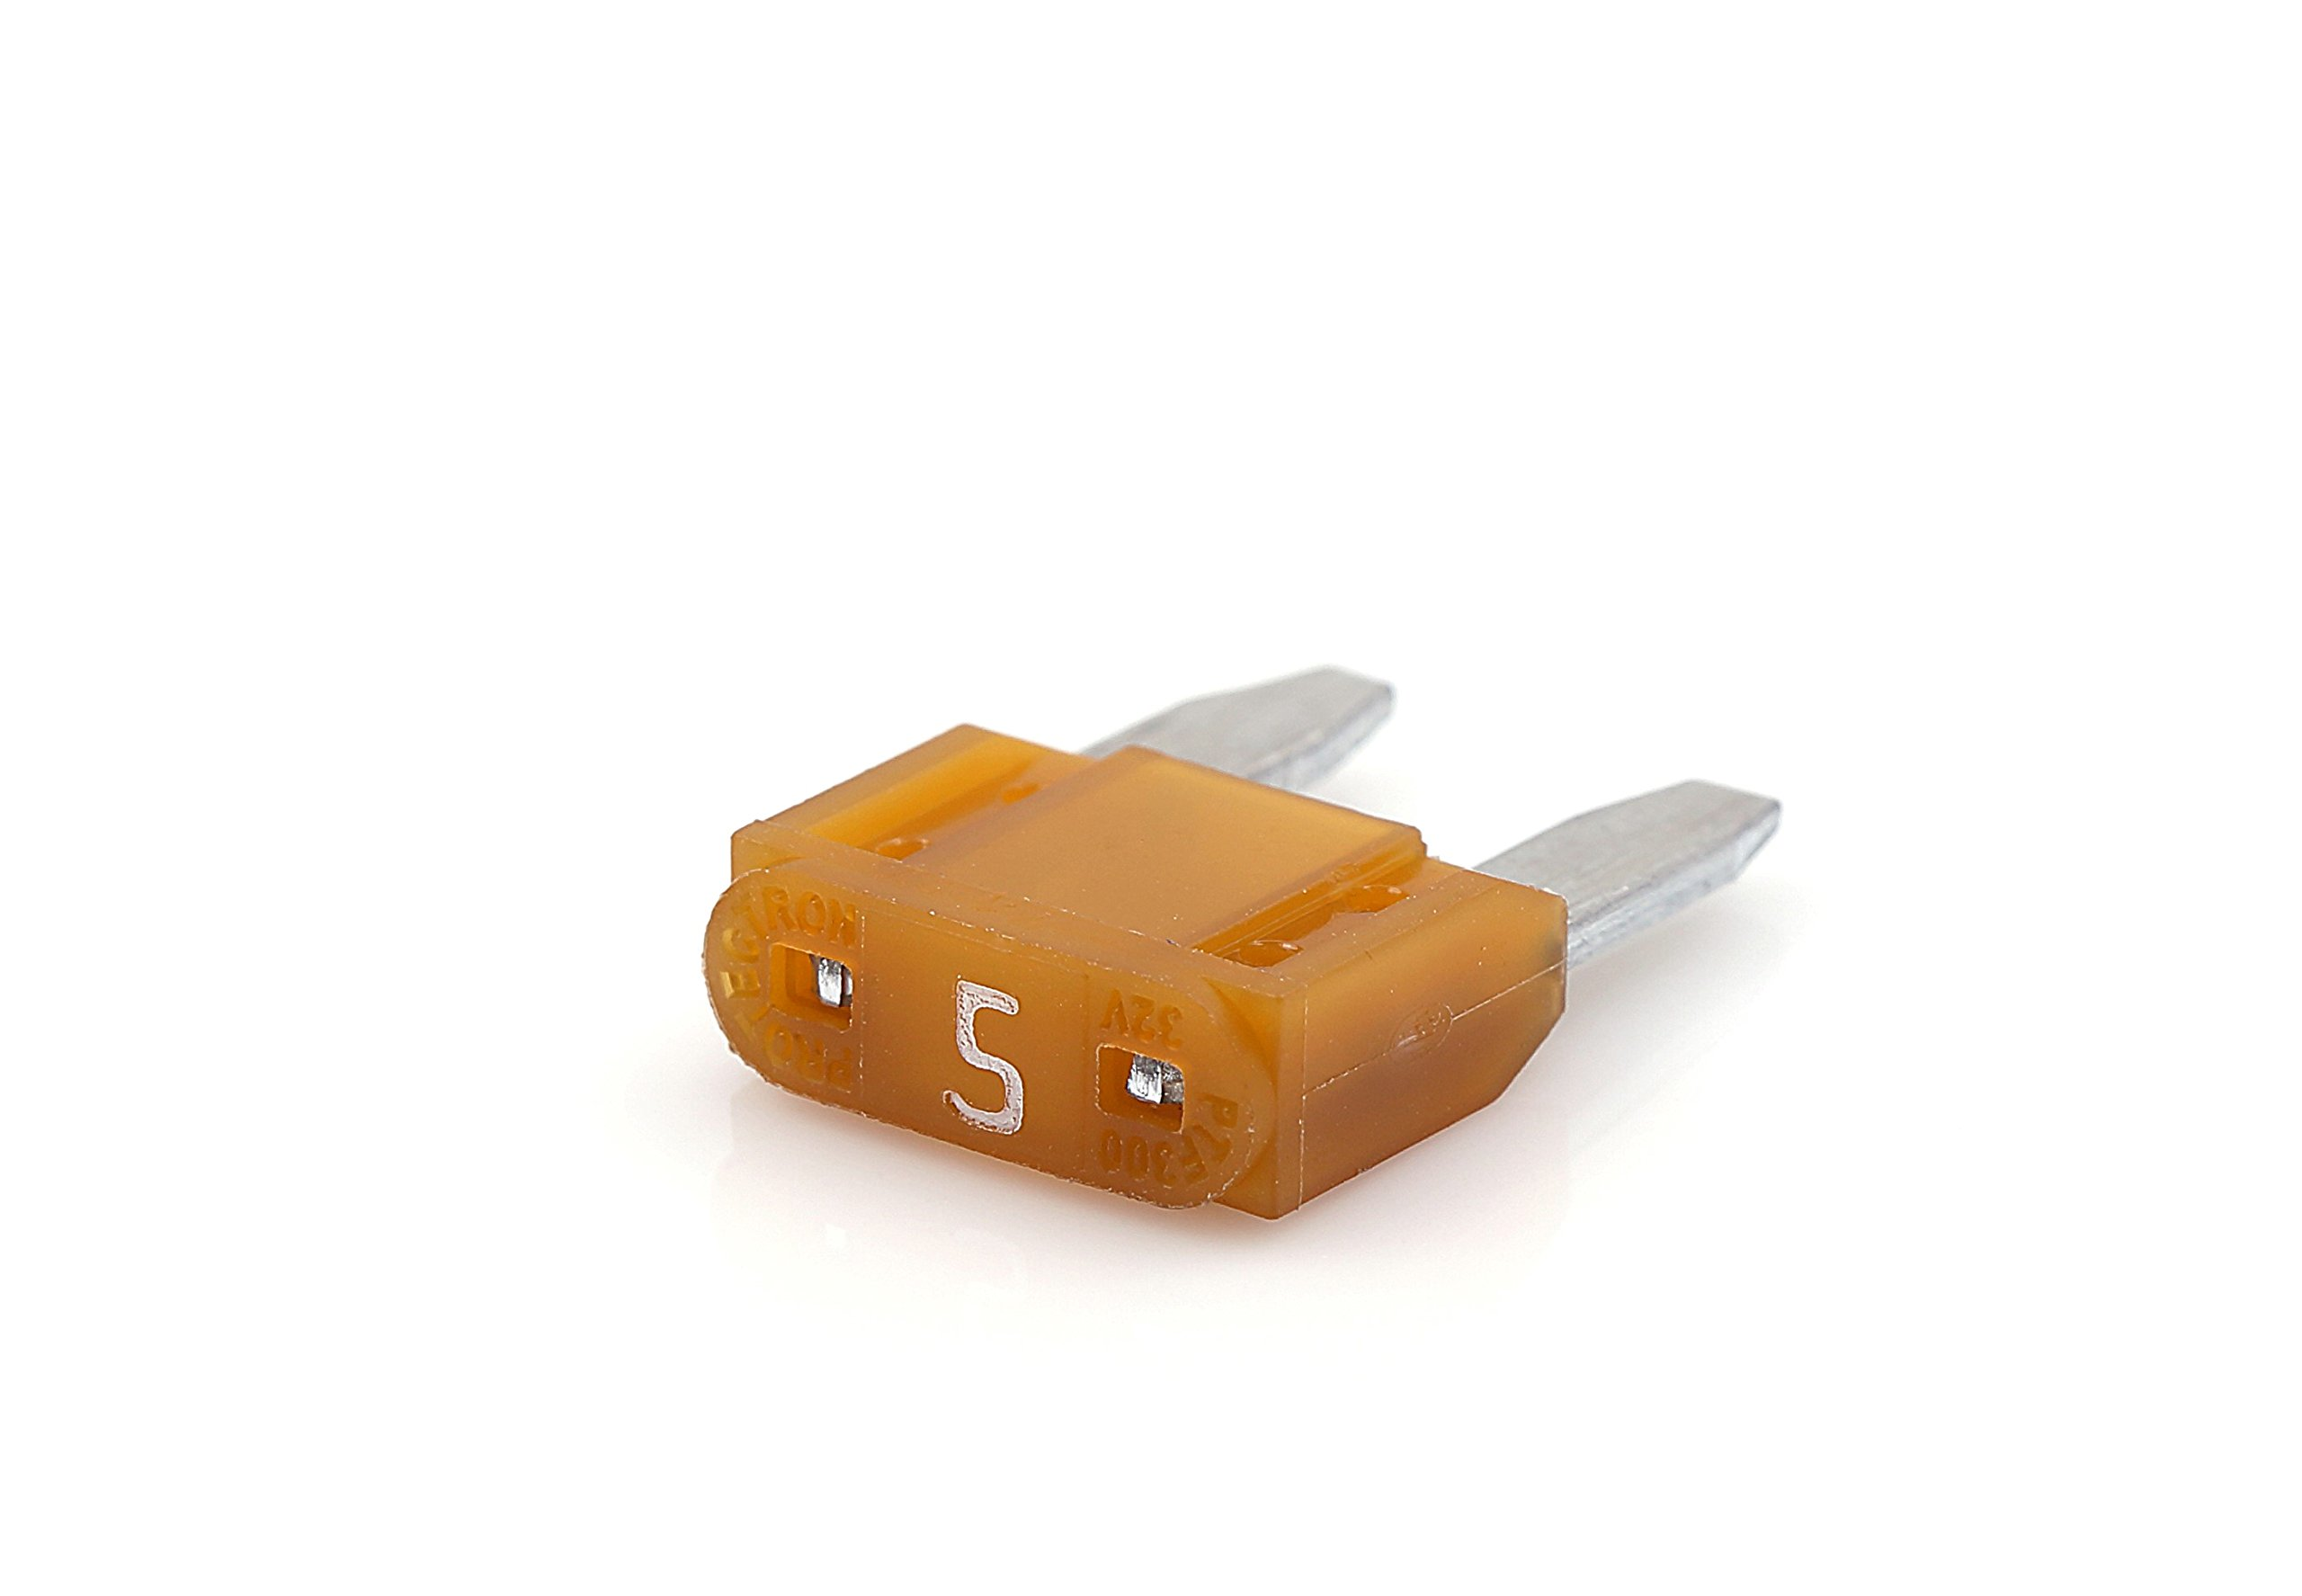 PROTECTRON MINI BLADE FUSE-5 AMP(Pack of 5) product image